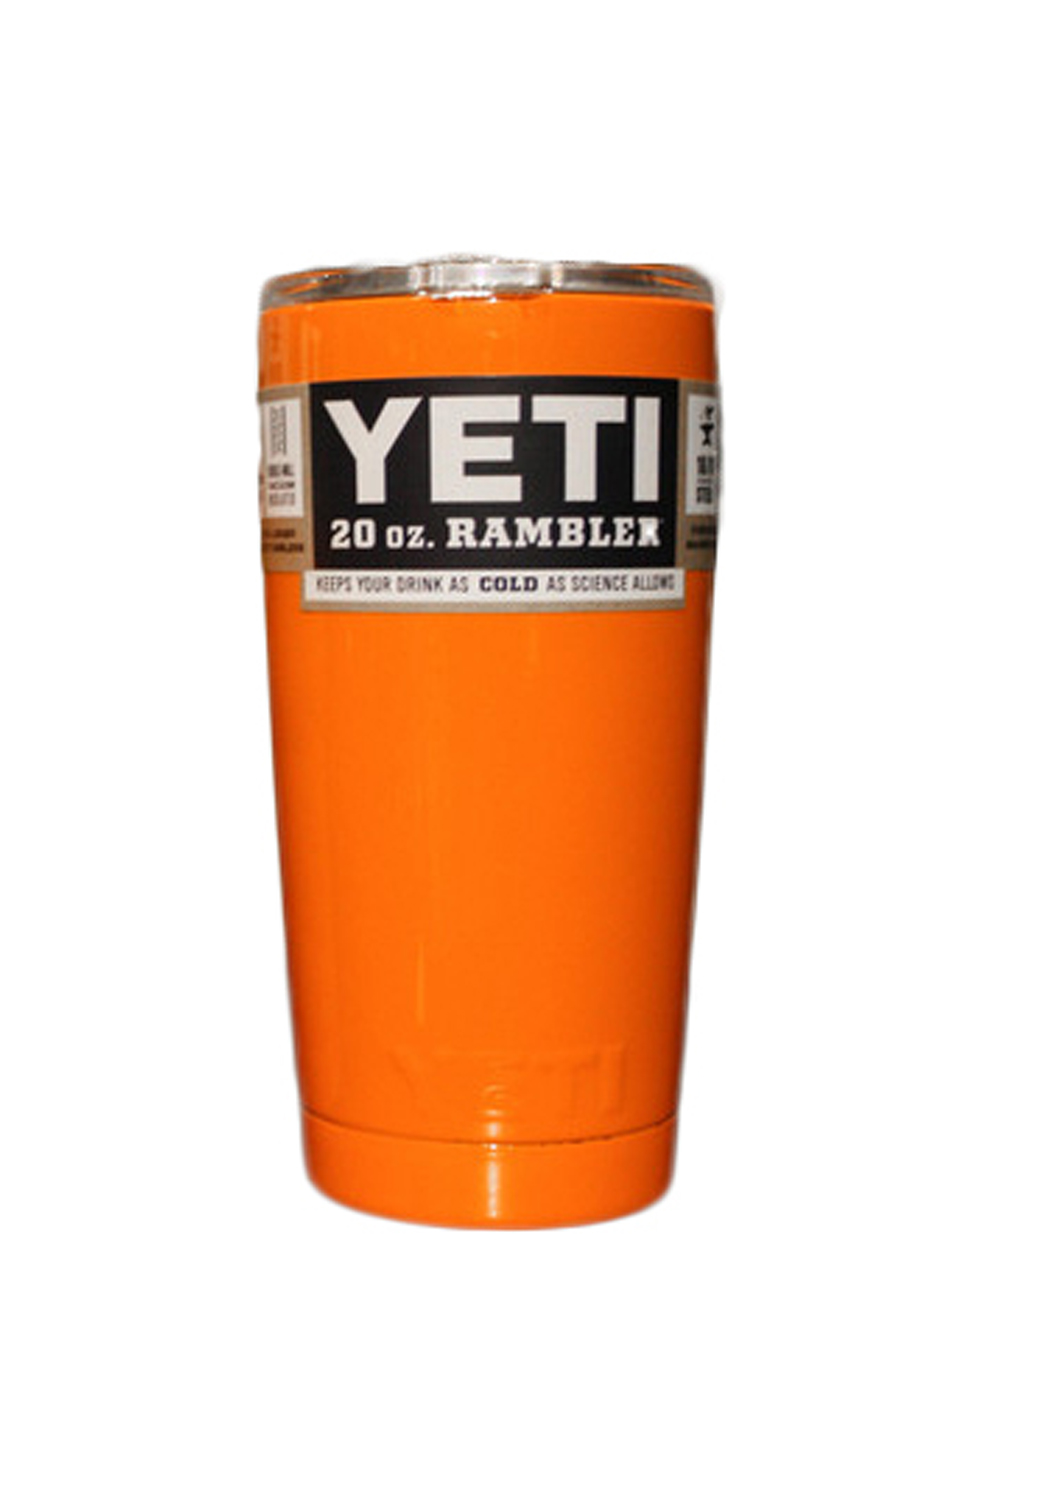 YETI Rambler Tumbler 20oz. Gator Orange Powder Coat - 904